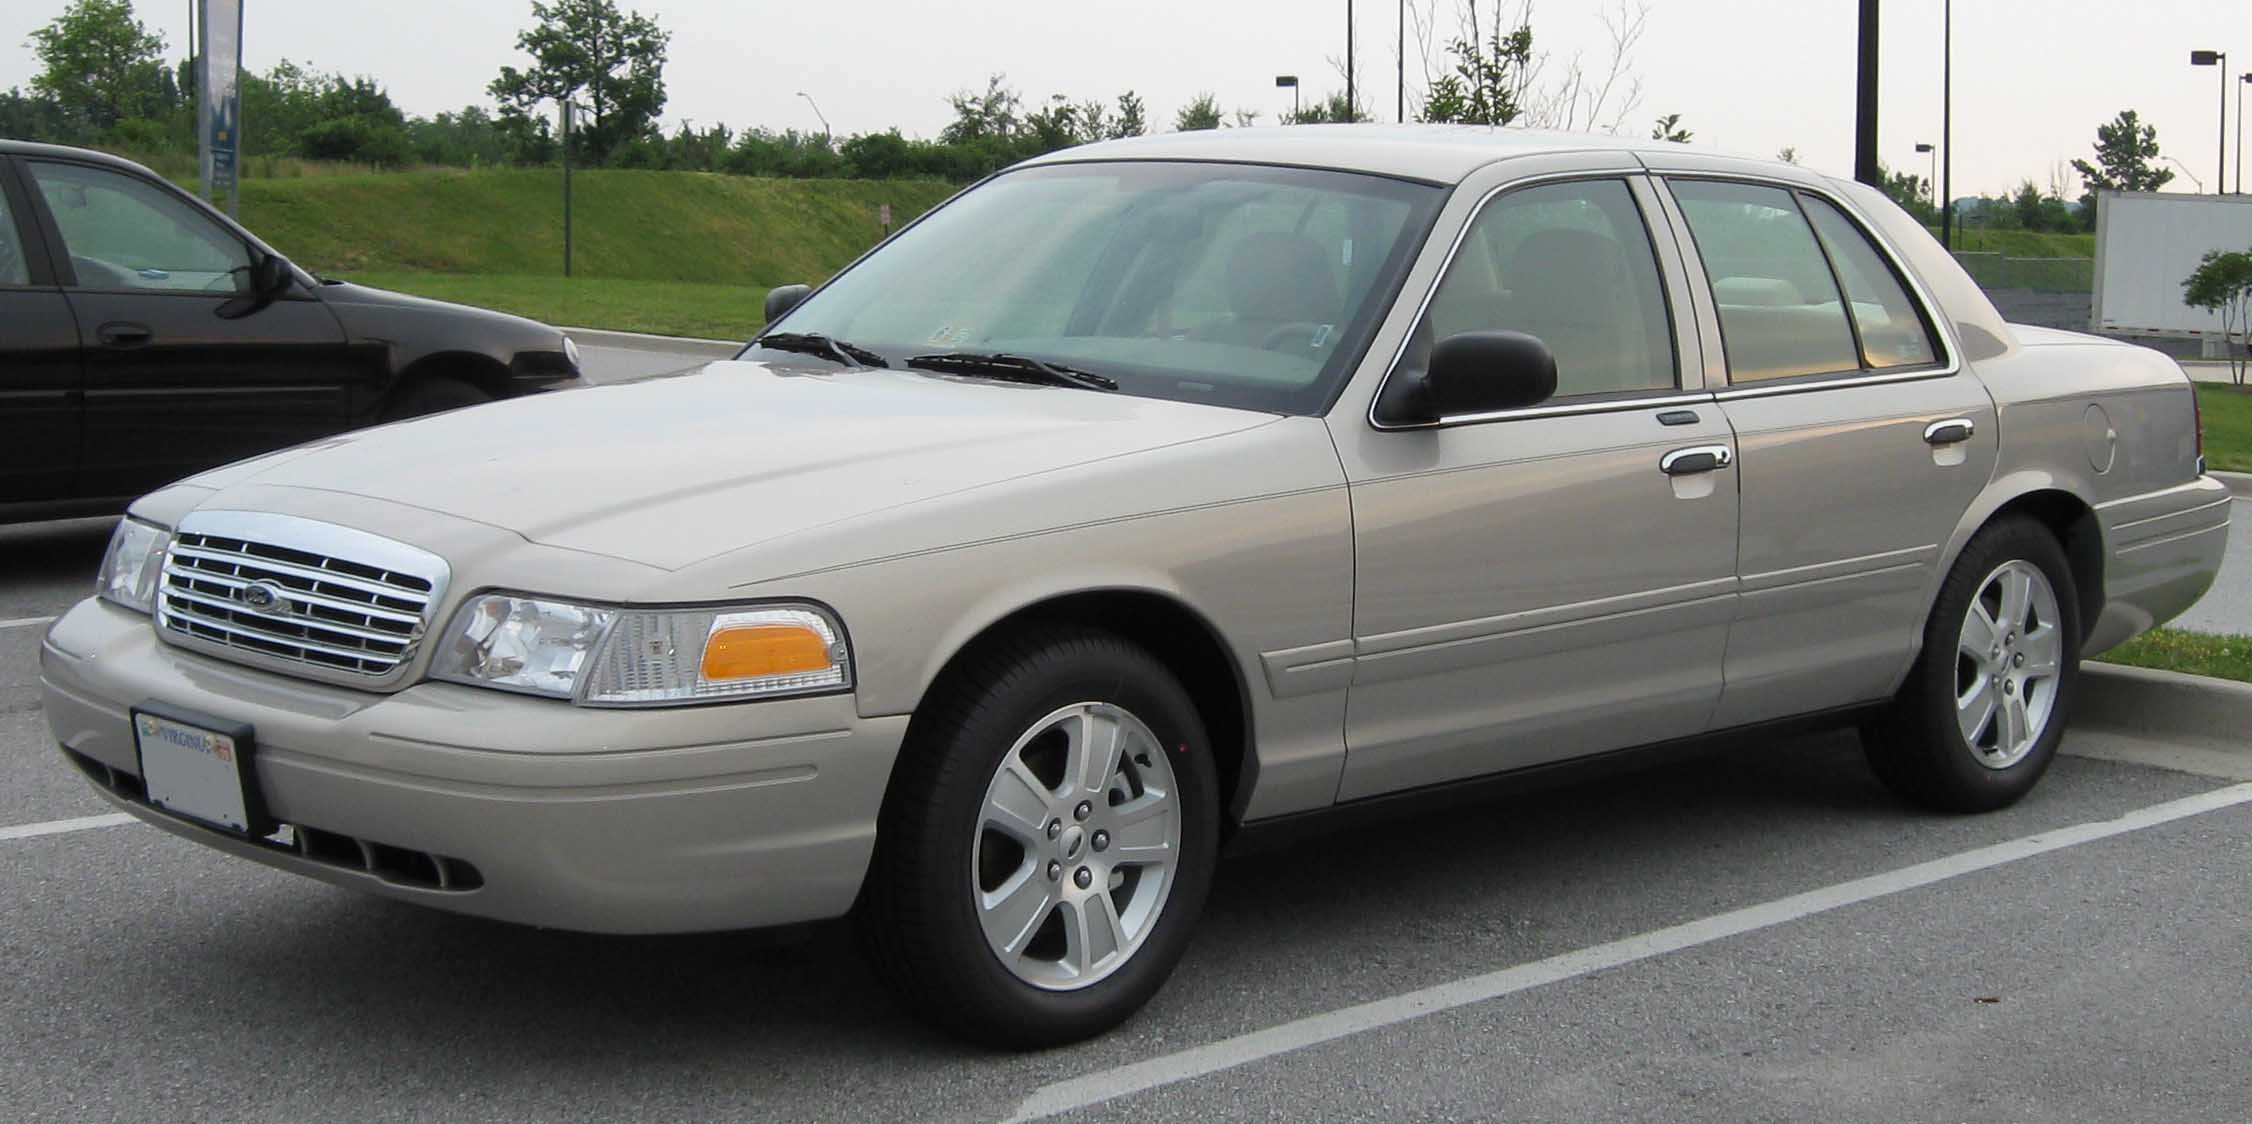 2007_Ford_Crown_Victoria_LX.jpg